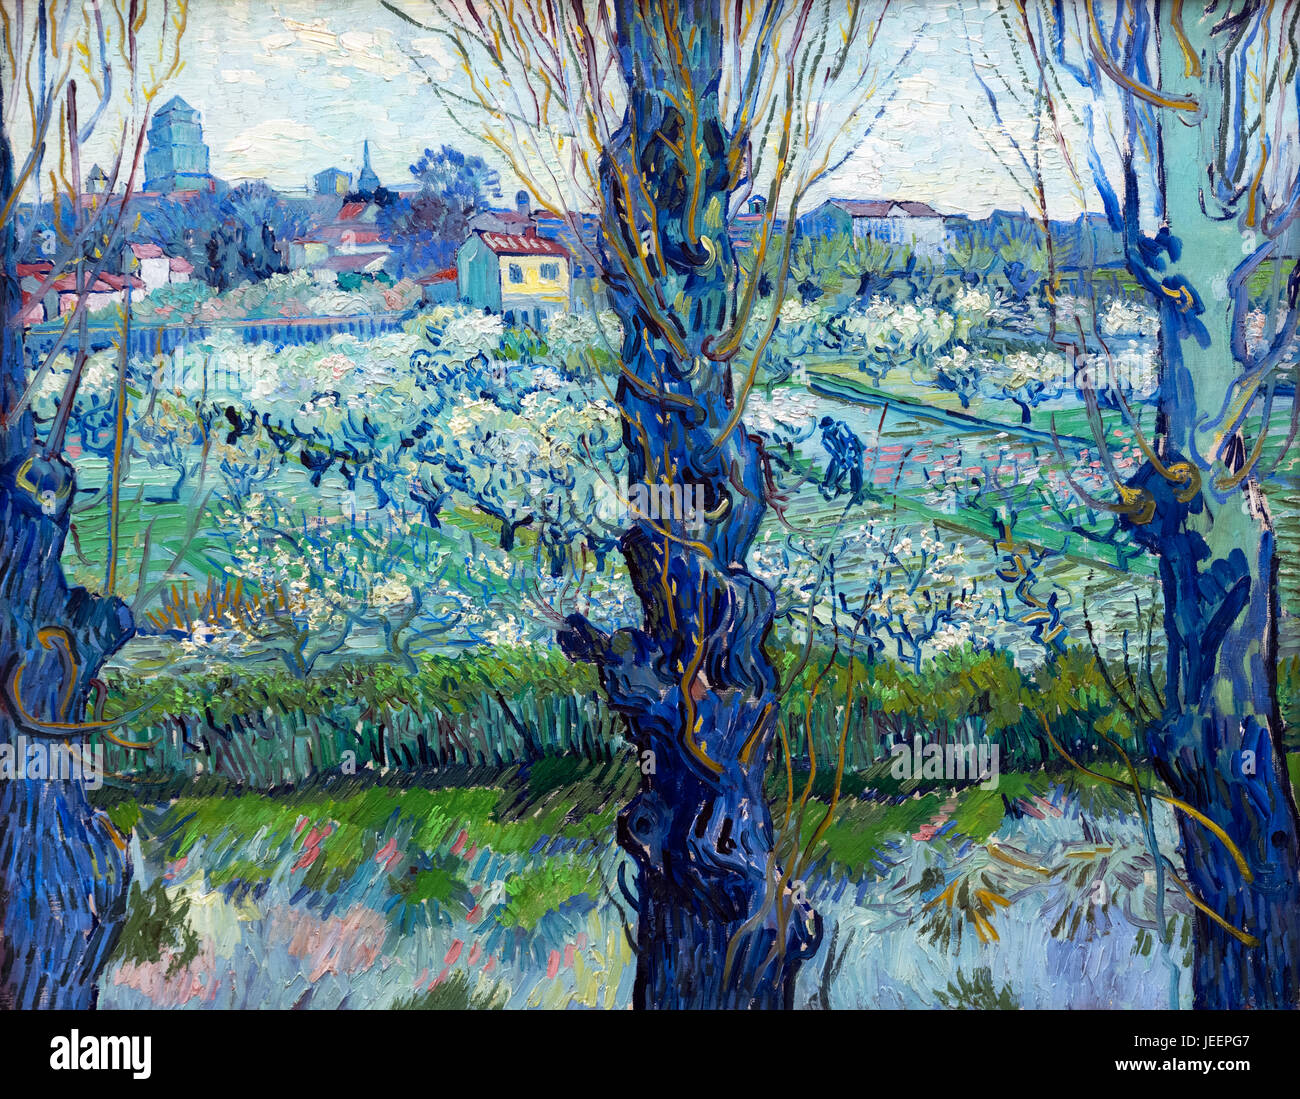 View of Arles (Vue d'Arles) by Vincent van Gogh (1853-1890), oil on canvas, 1889 - Stock Image